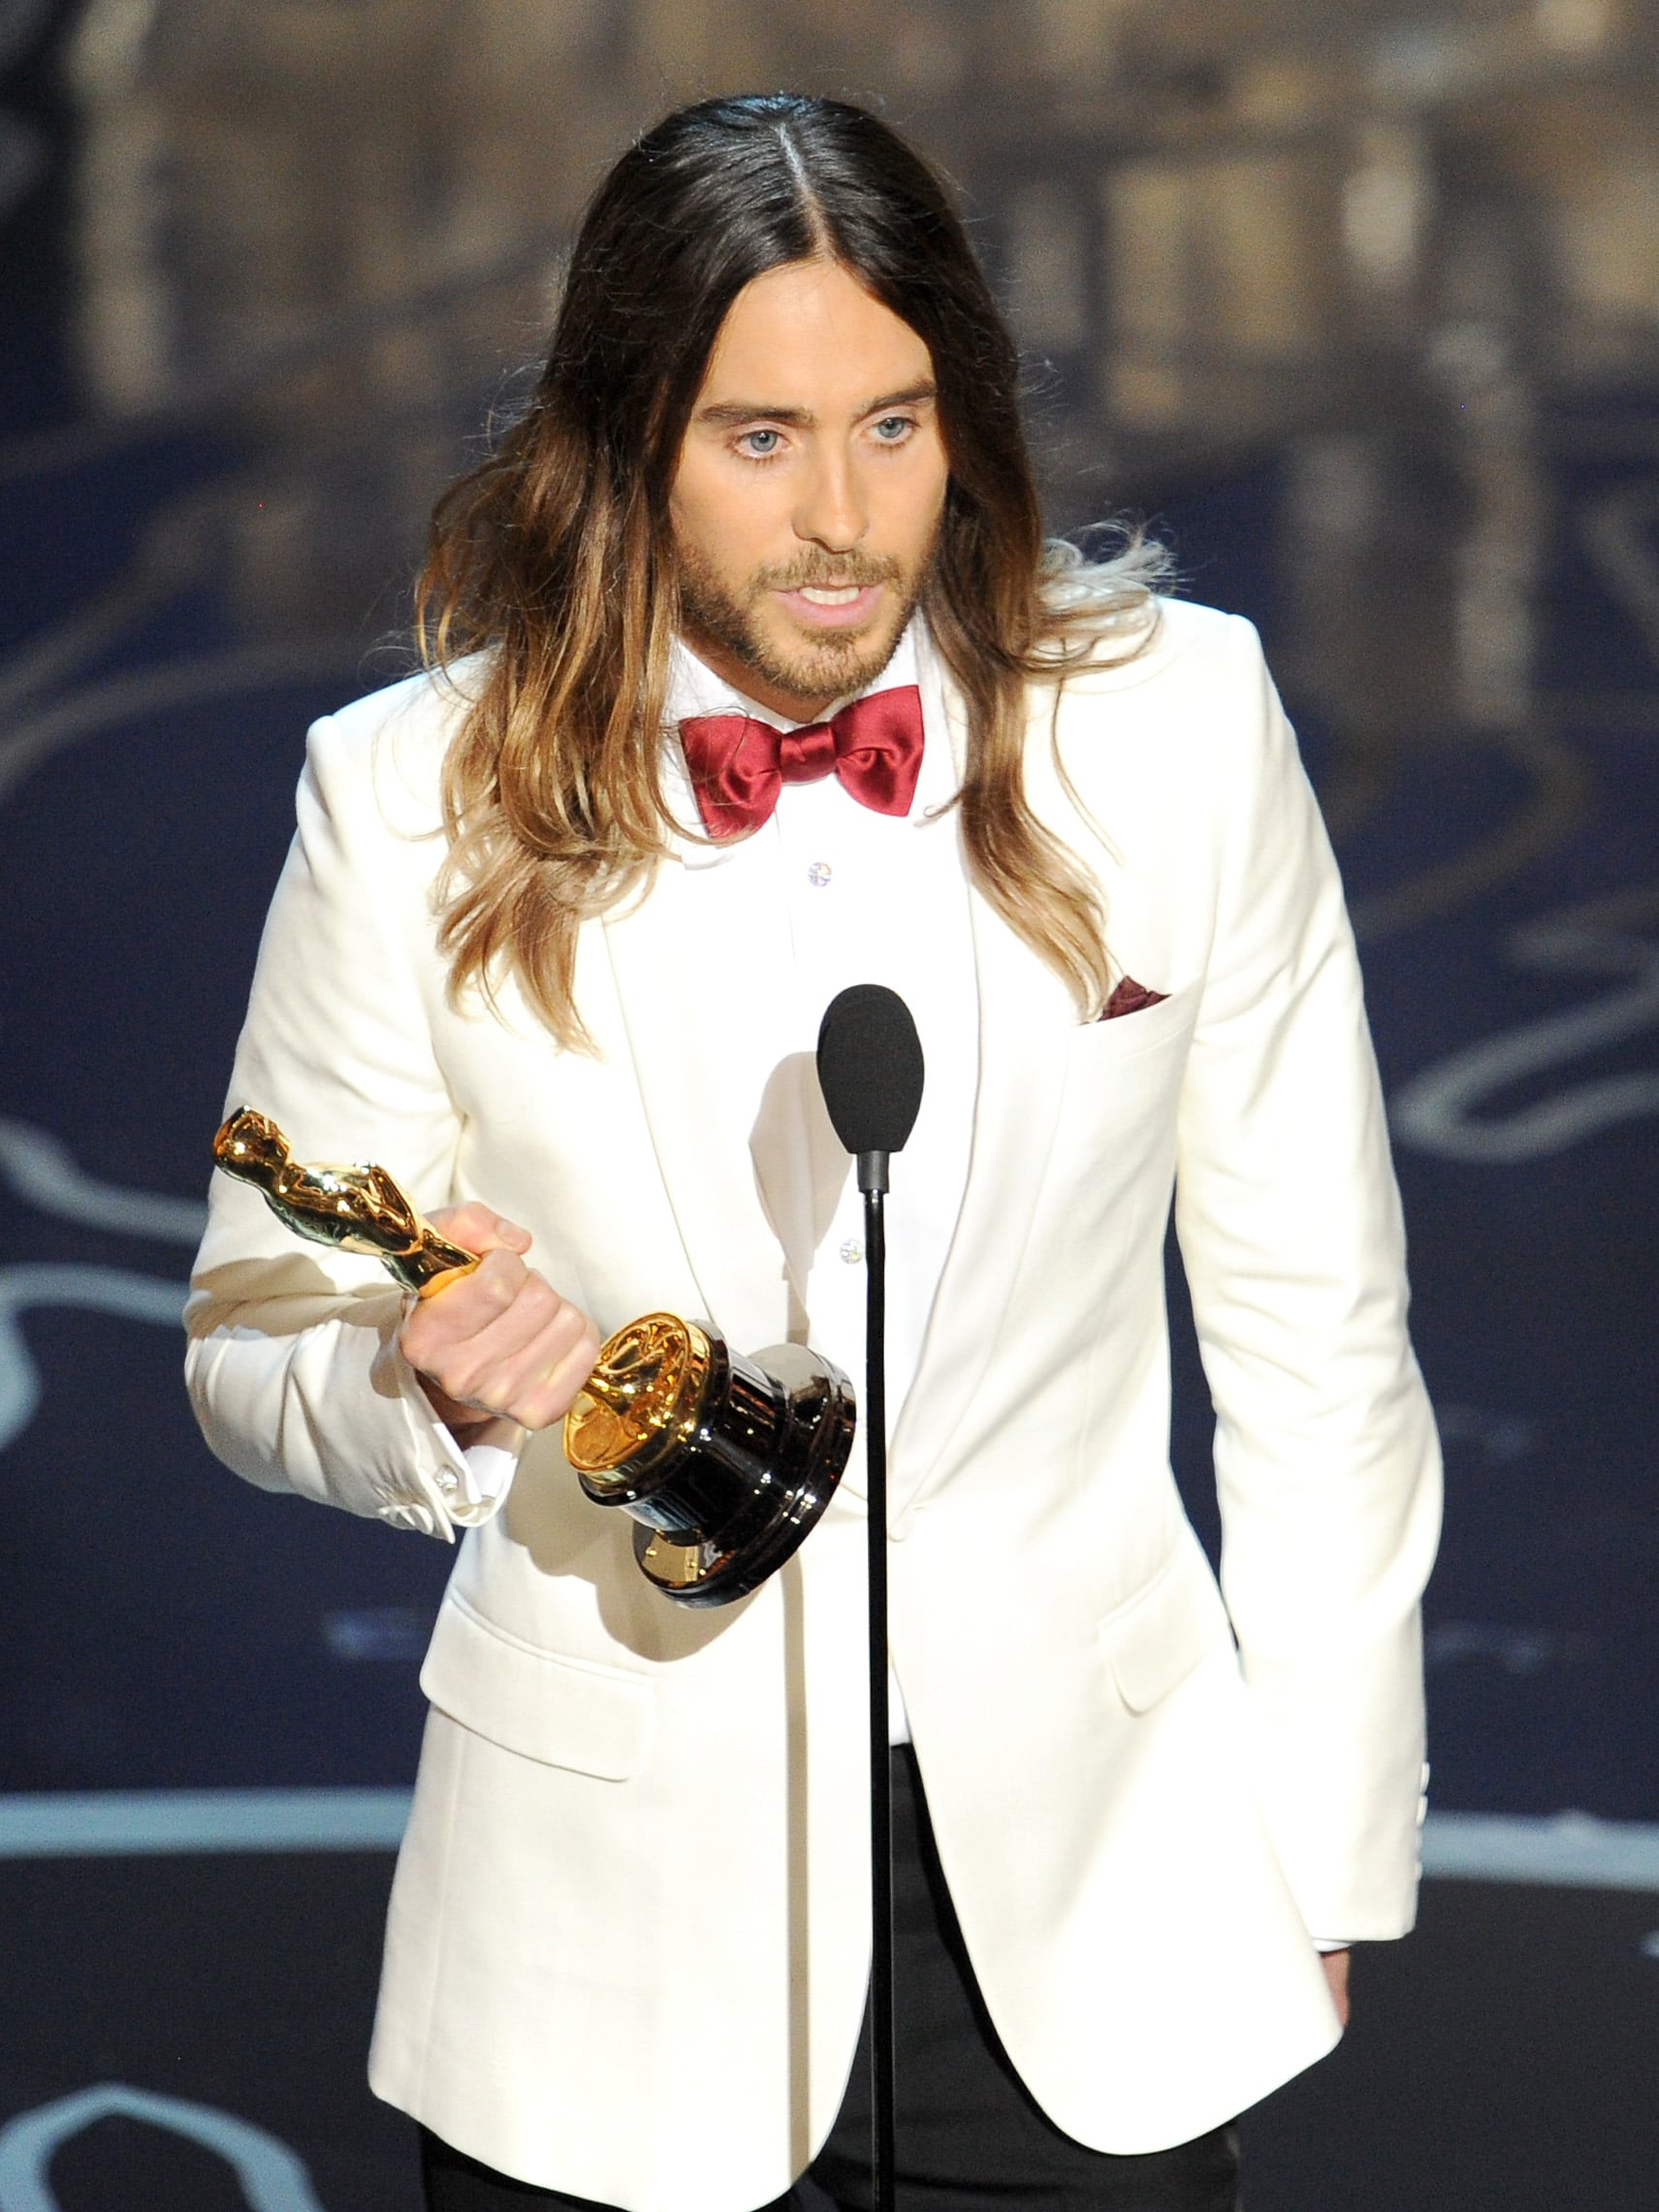 Best Supporting Actor: Jared Leto